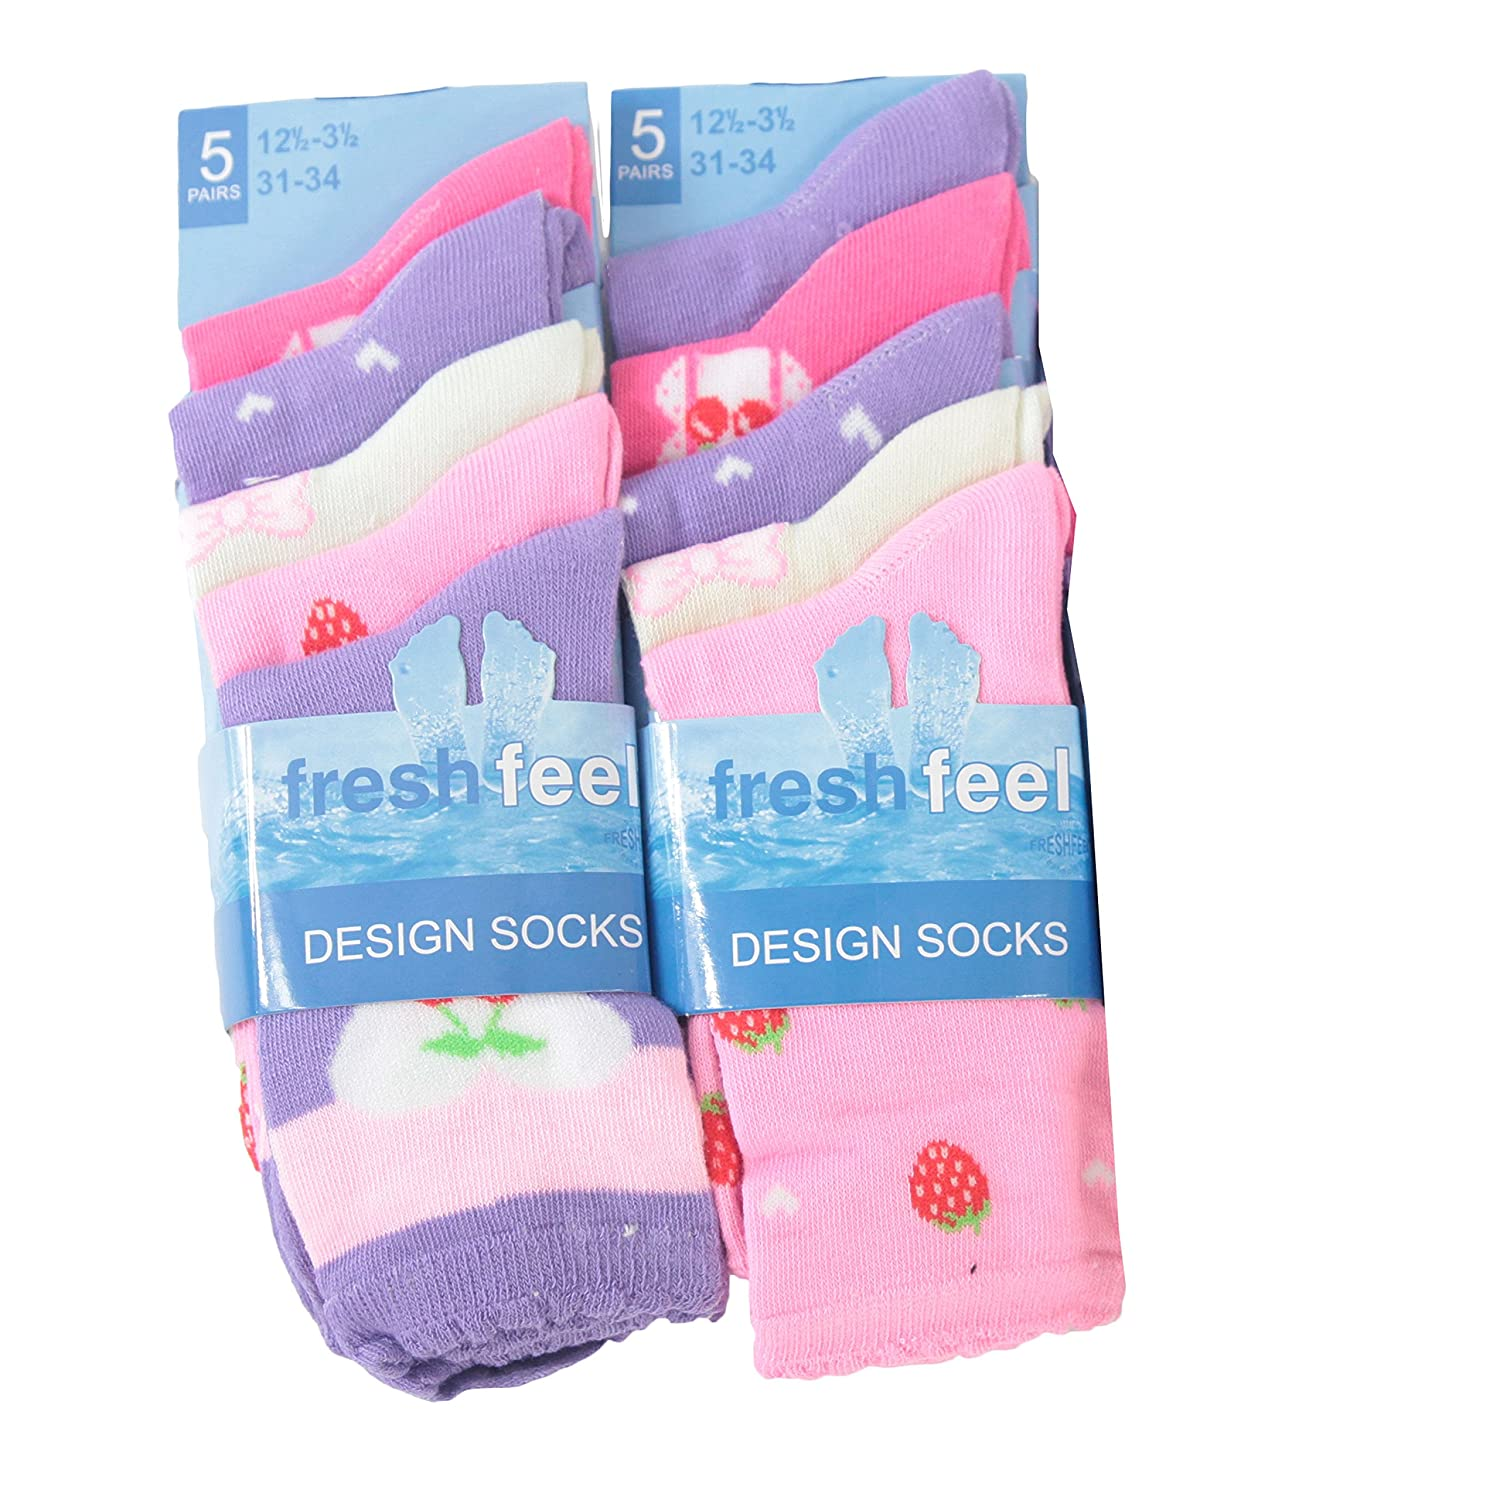 10pairs Girls Cotton Blend Funky Pattern Design Socks Girls Back To School Socks Shoe Size 3-5 to 12-3